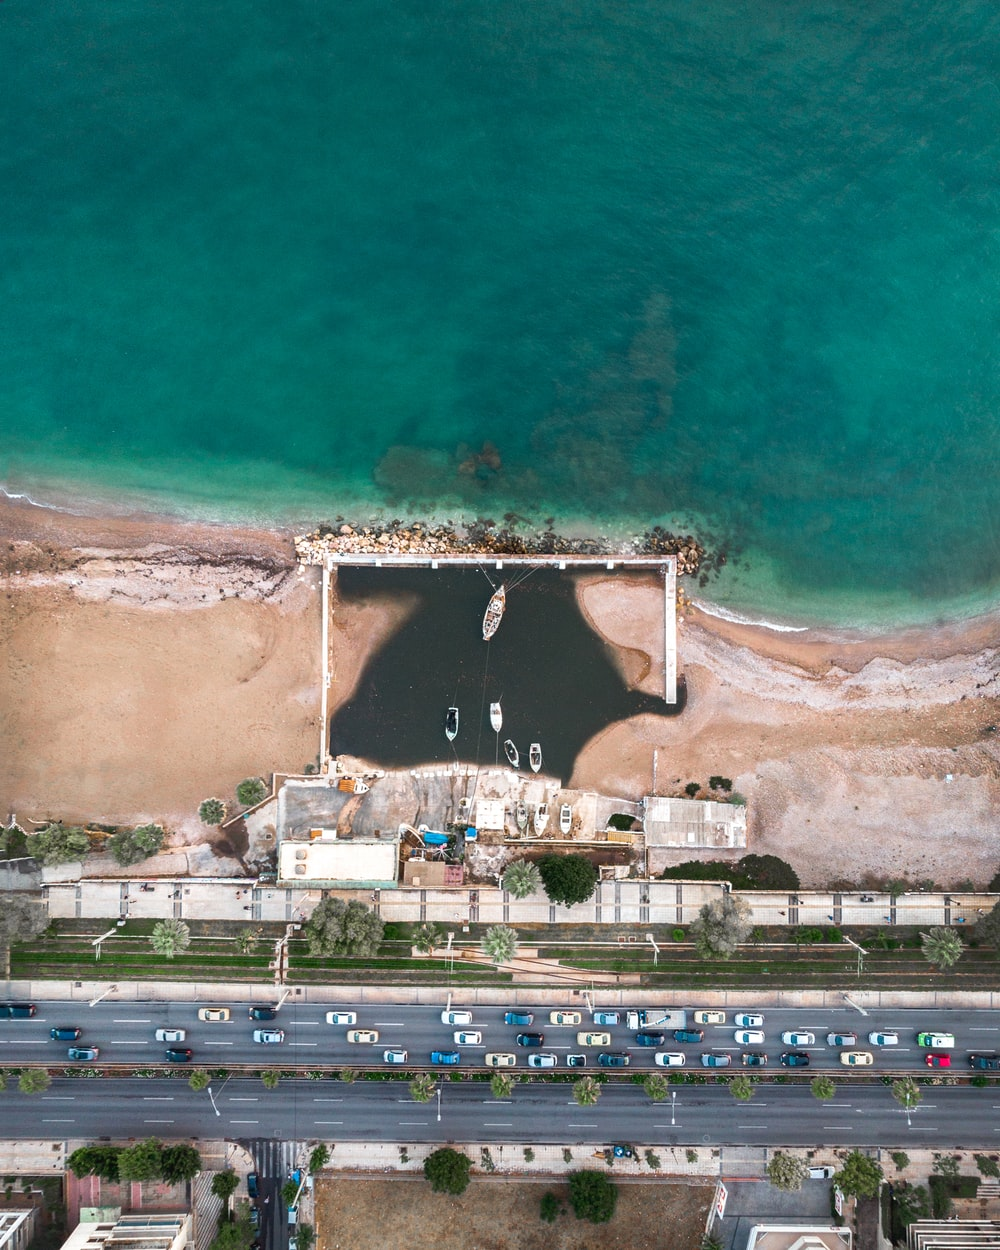 aerial photography of seashore near buildings and concrete road top during daytime